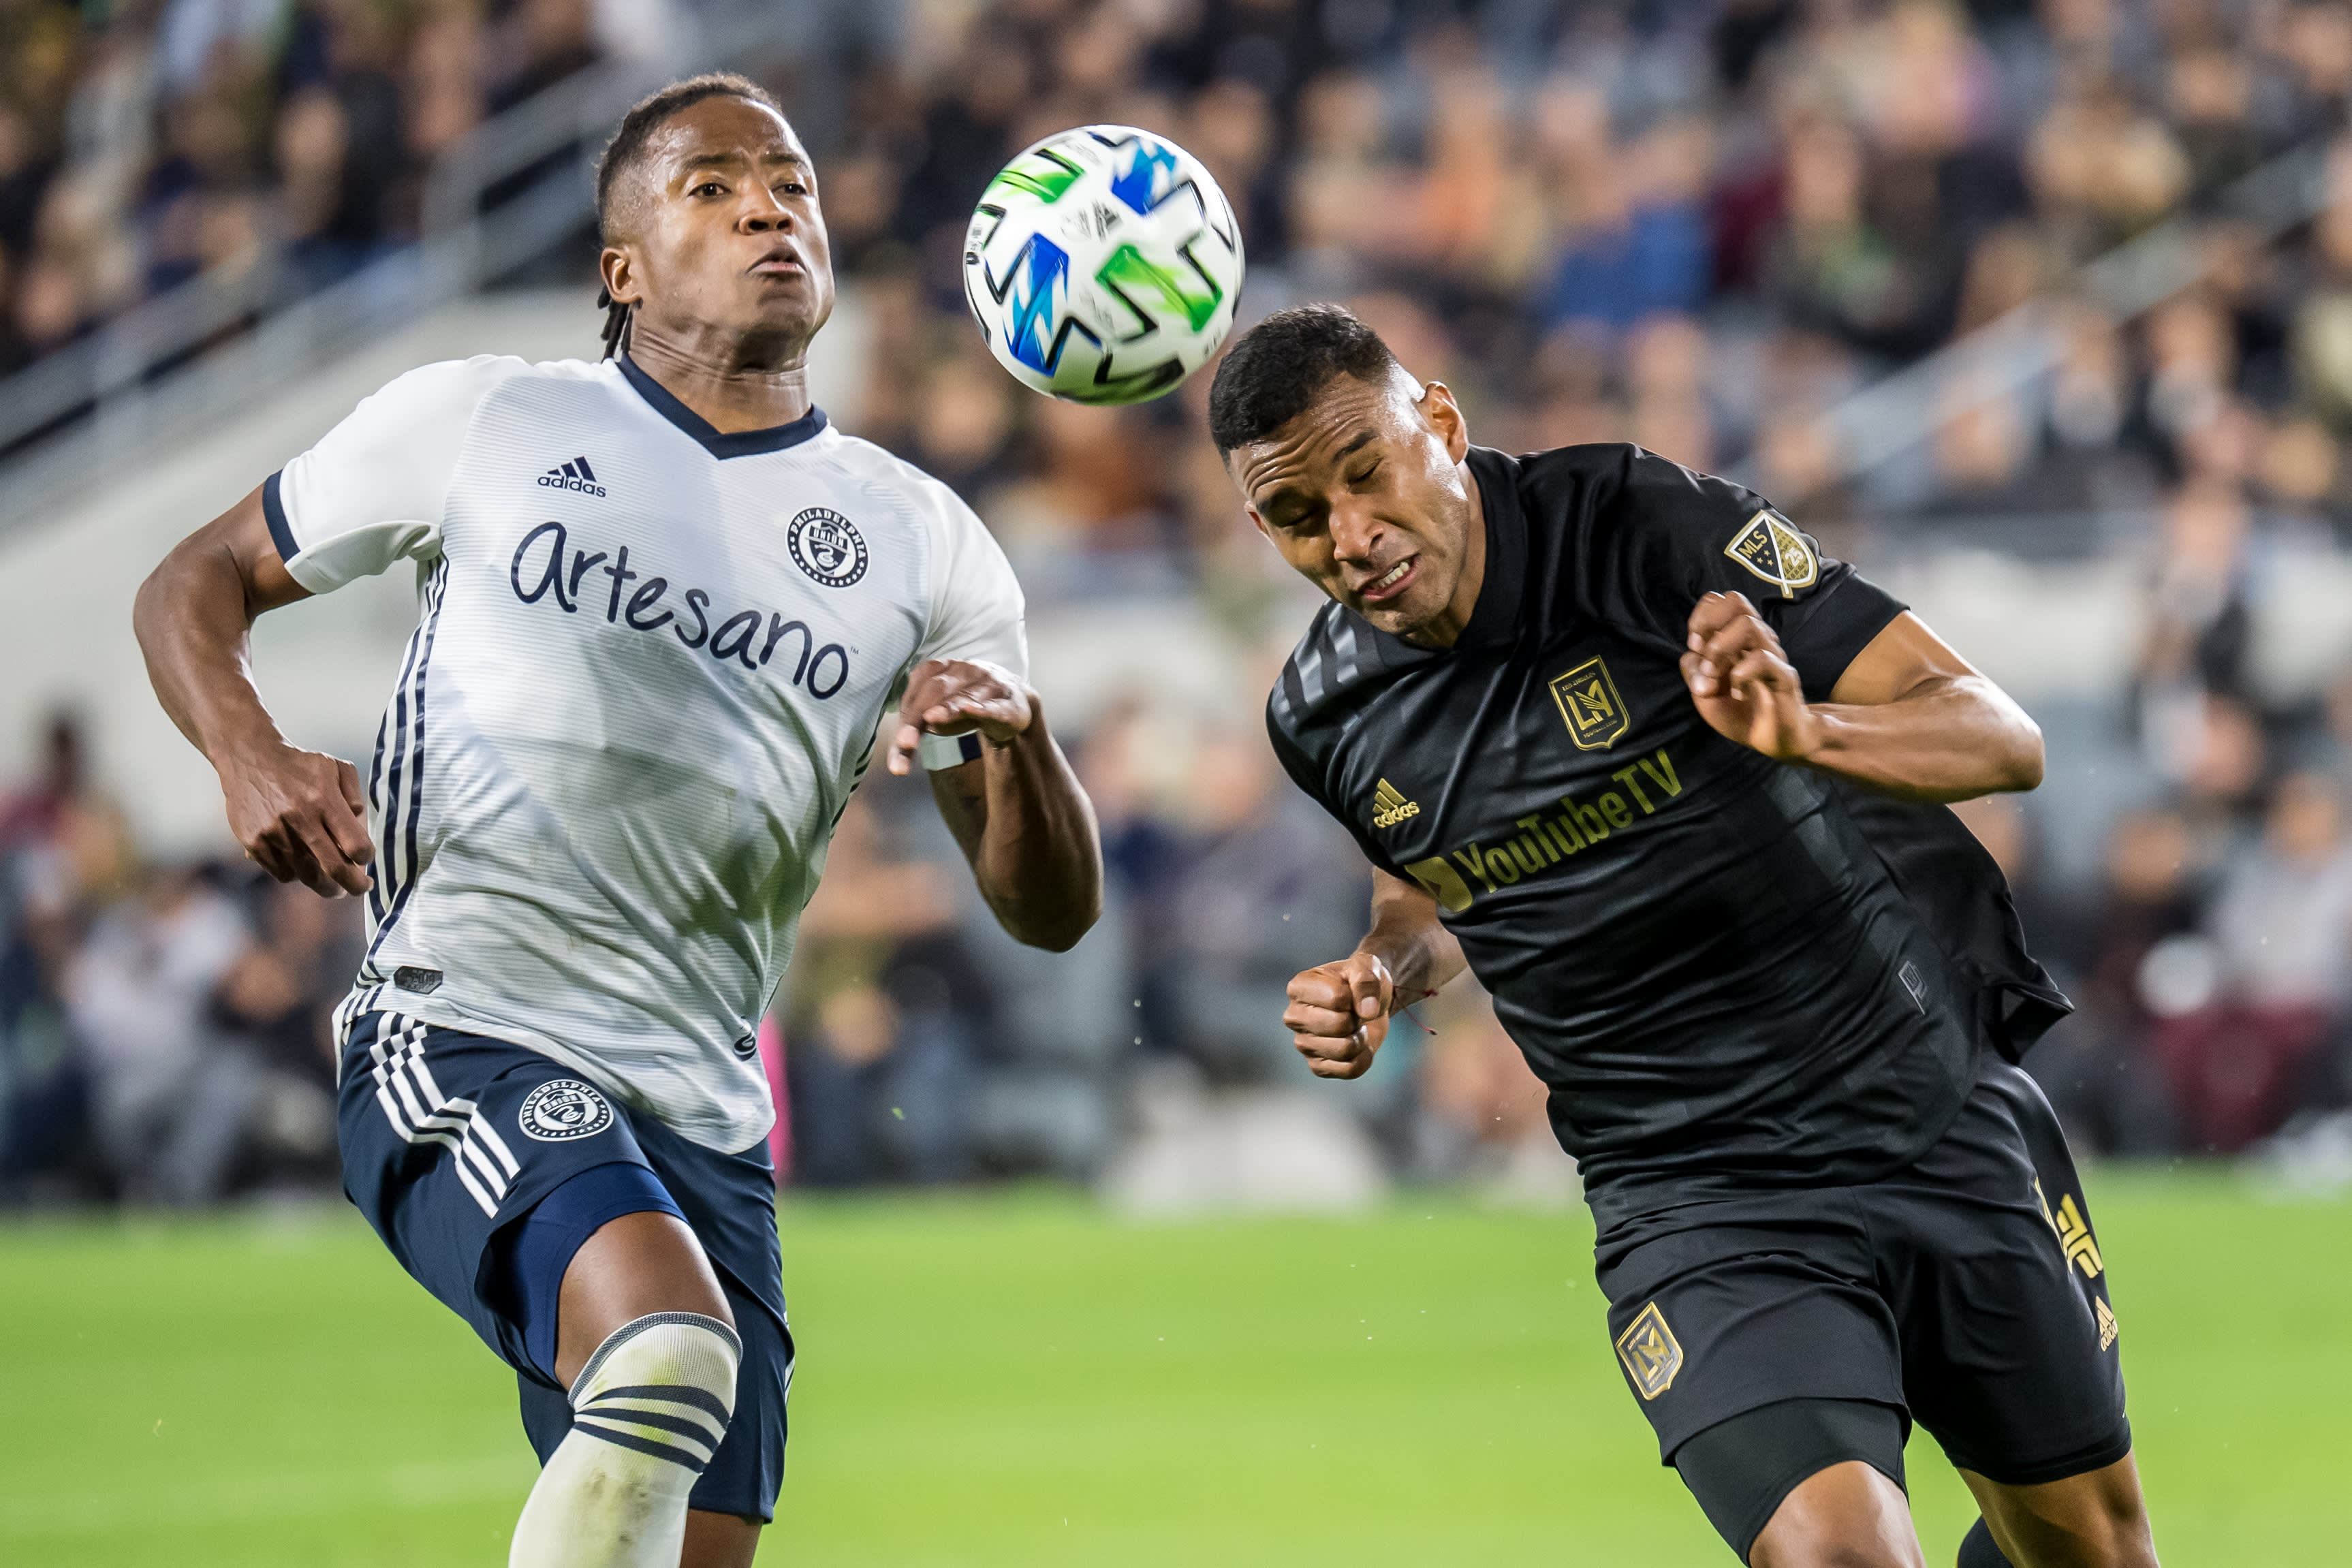 Mls Suspends Season For 30 Days Amid Concern Over Coronavirus